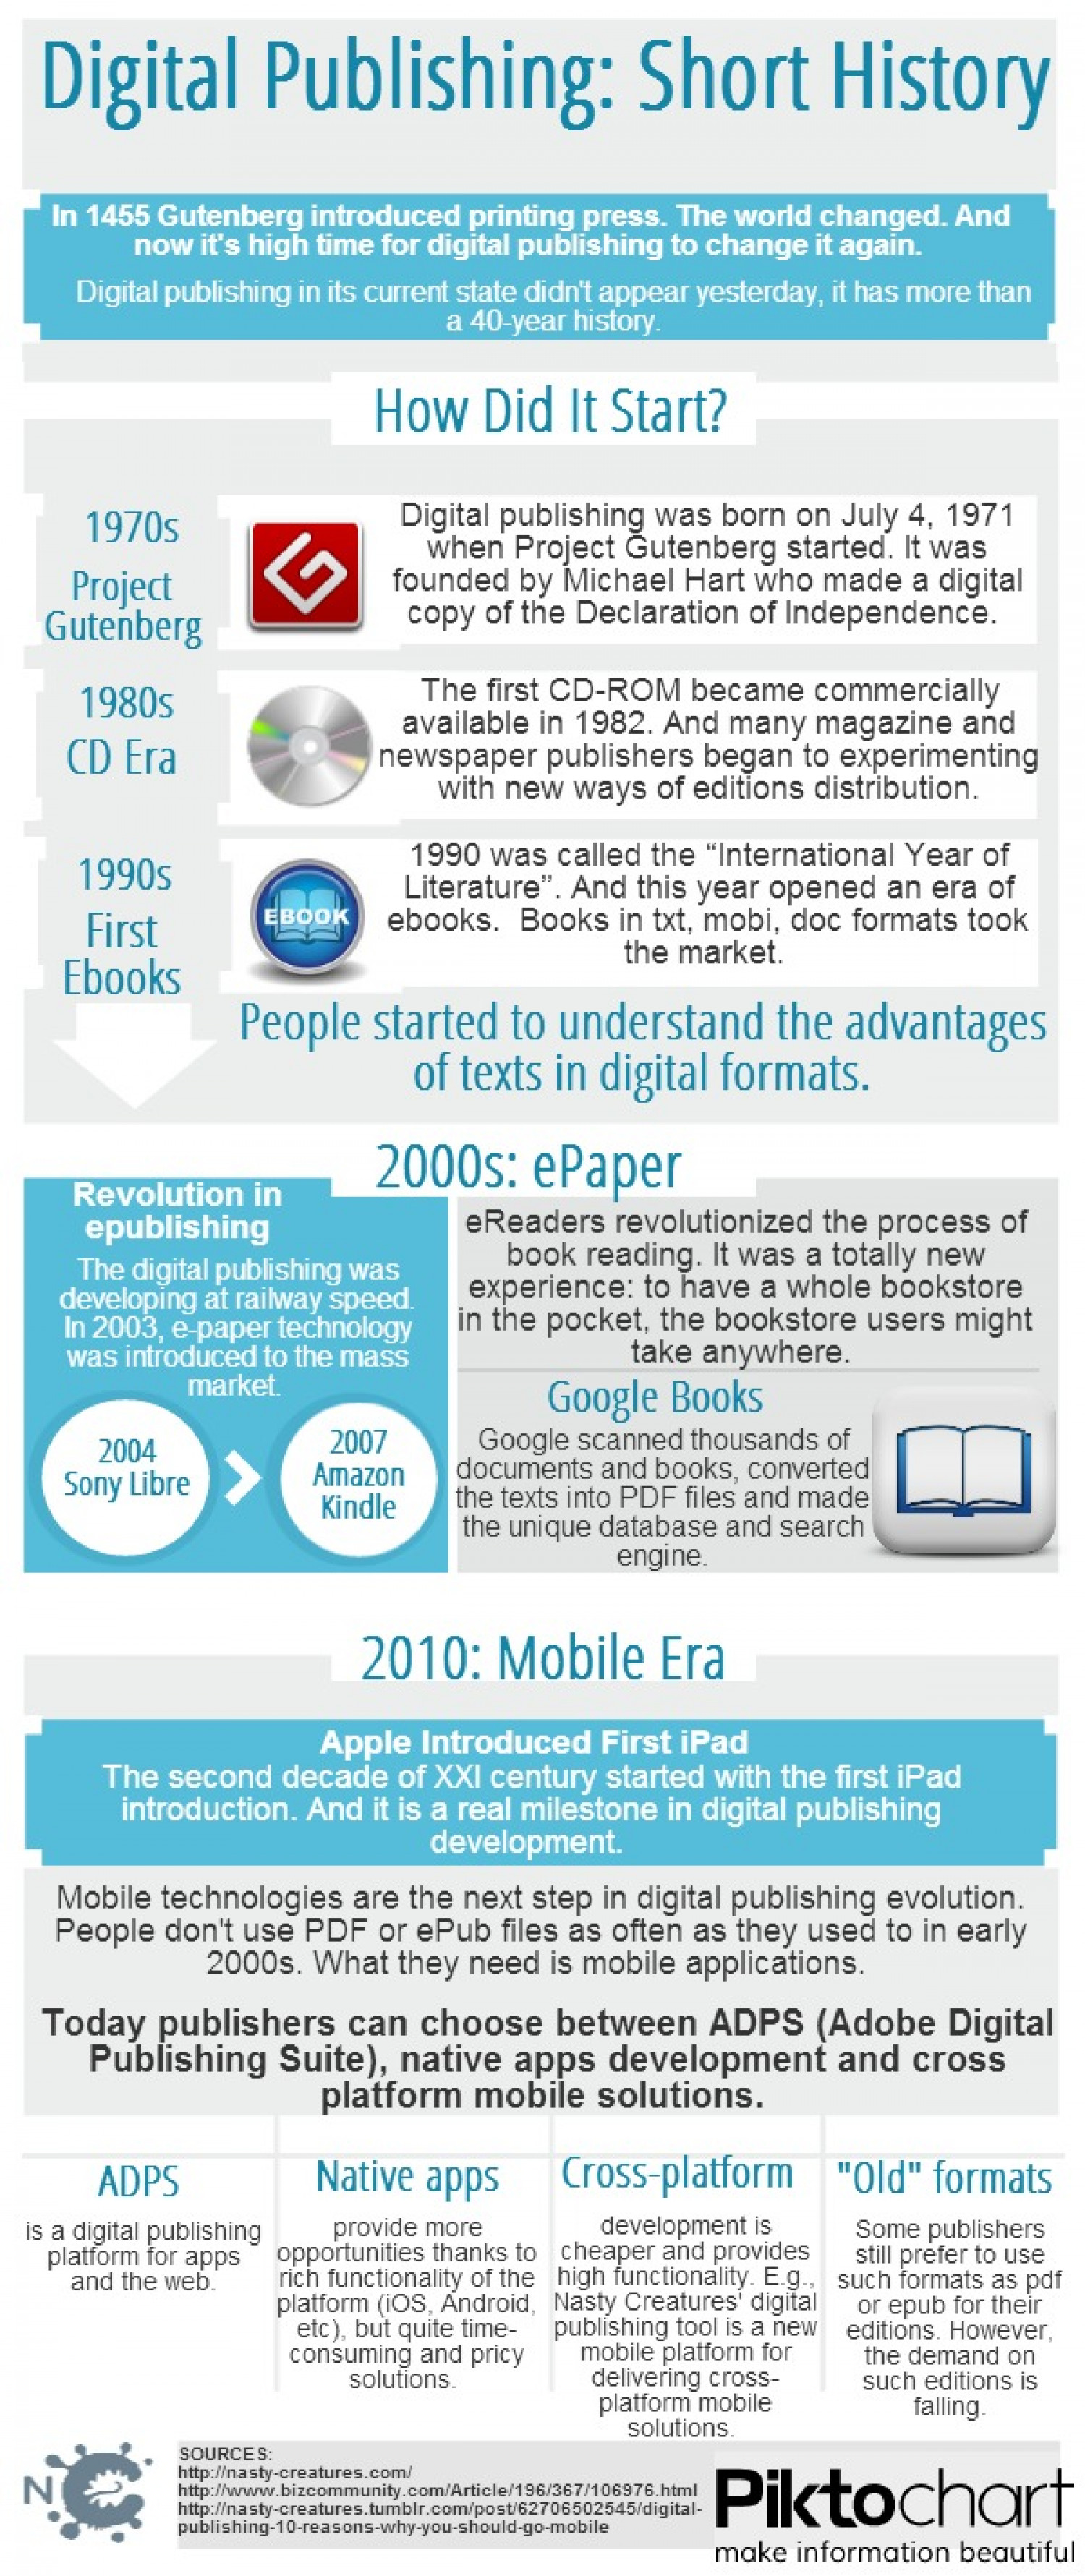 Digital Publishing: Short History Infographic